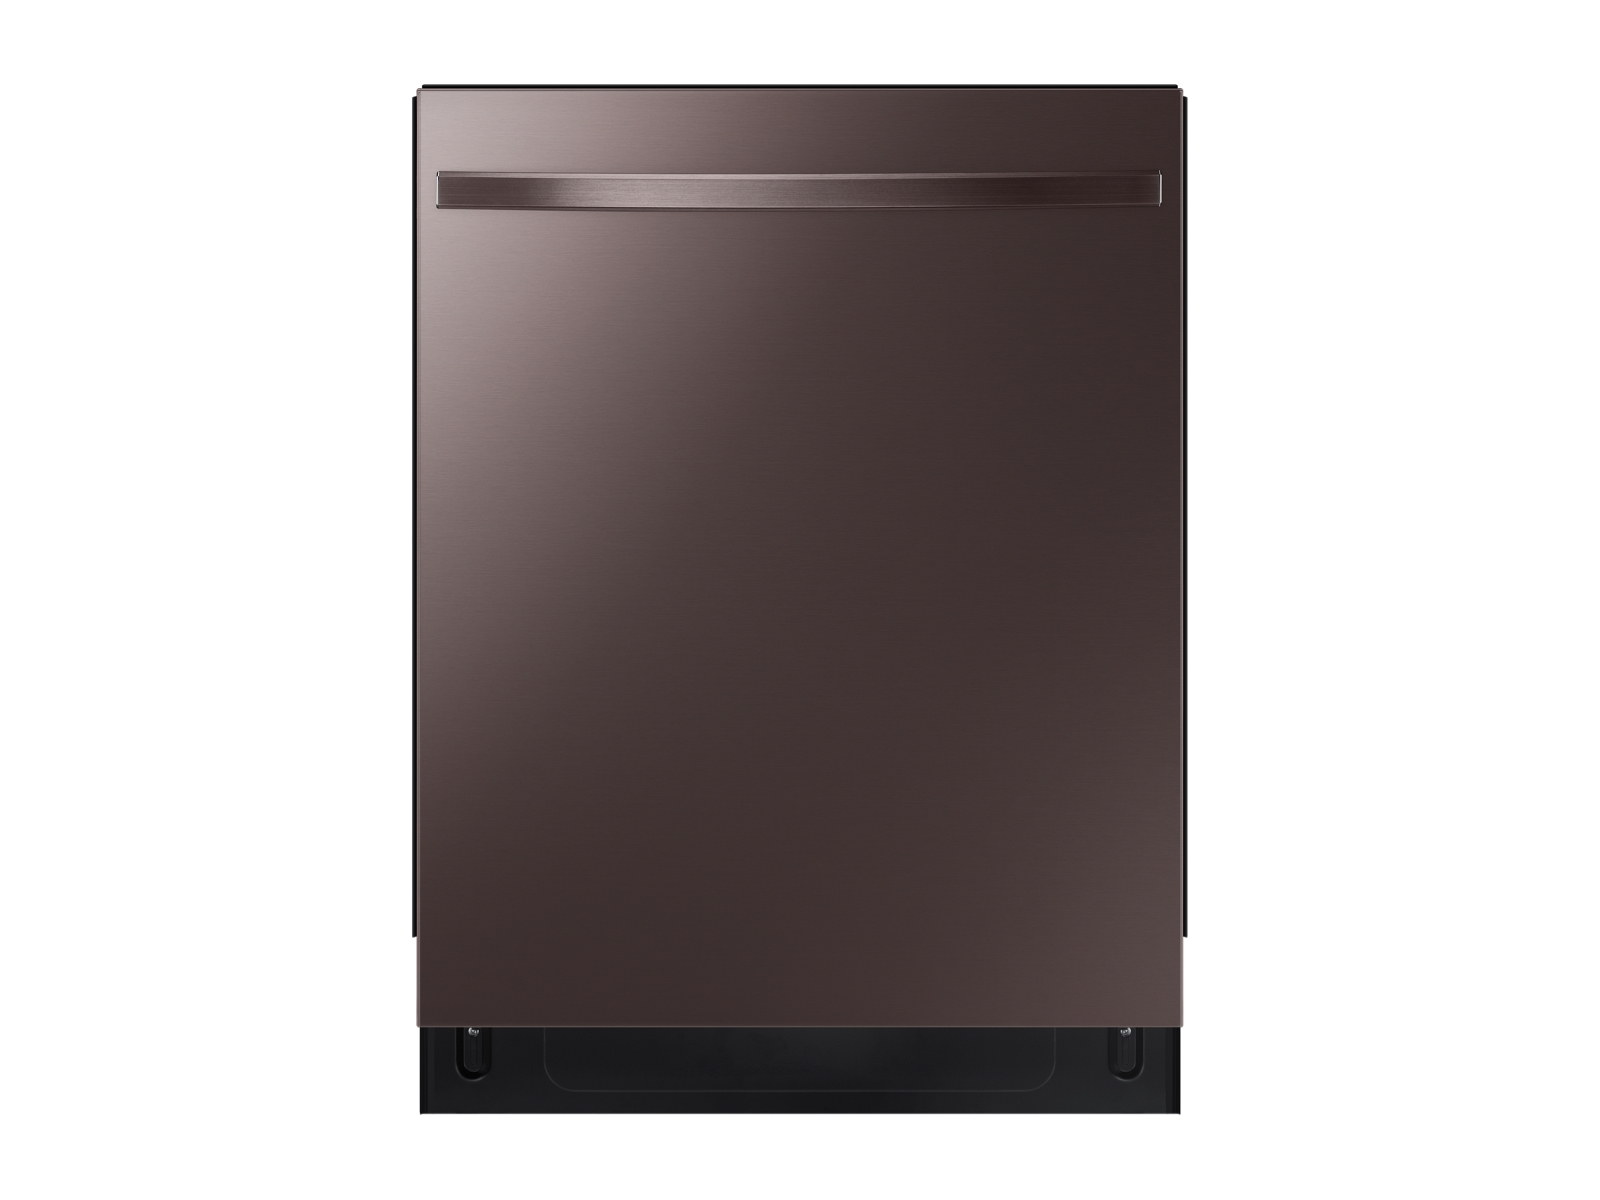 23 cu. ft. counter depth 4-door refrigerator, gas range with Air Fry, microwave and 48 dBA modern-look dishwasher package